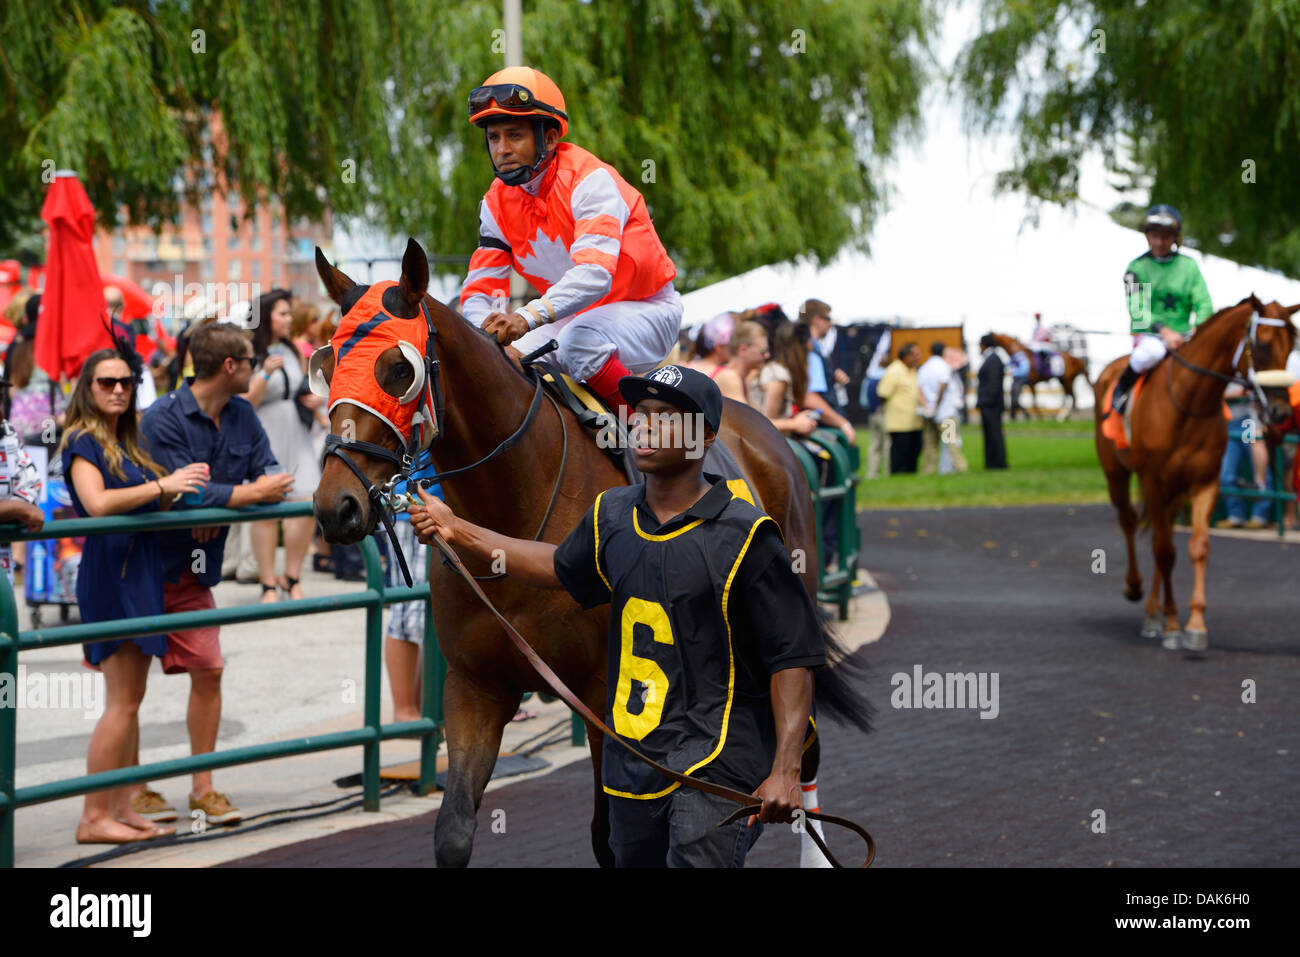 A Bit of Dan thoroughbred horse in the walking ring at the Queens Plate Woodbine Racetrack Toronto Canada - Stock Image